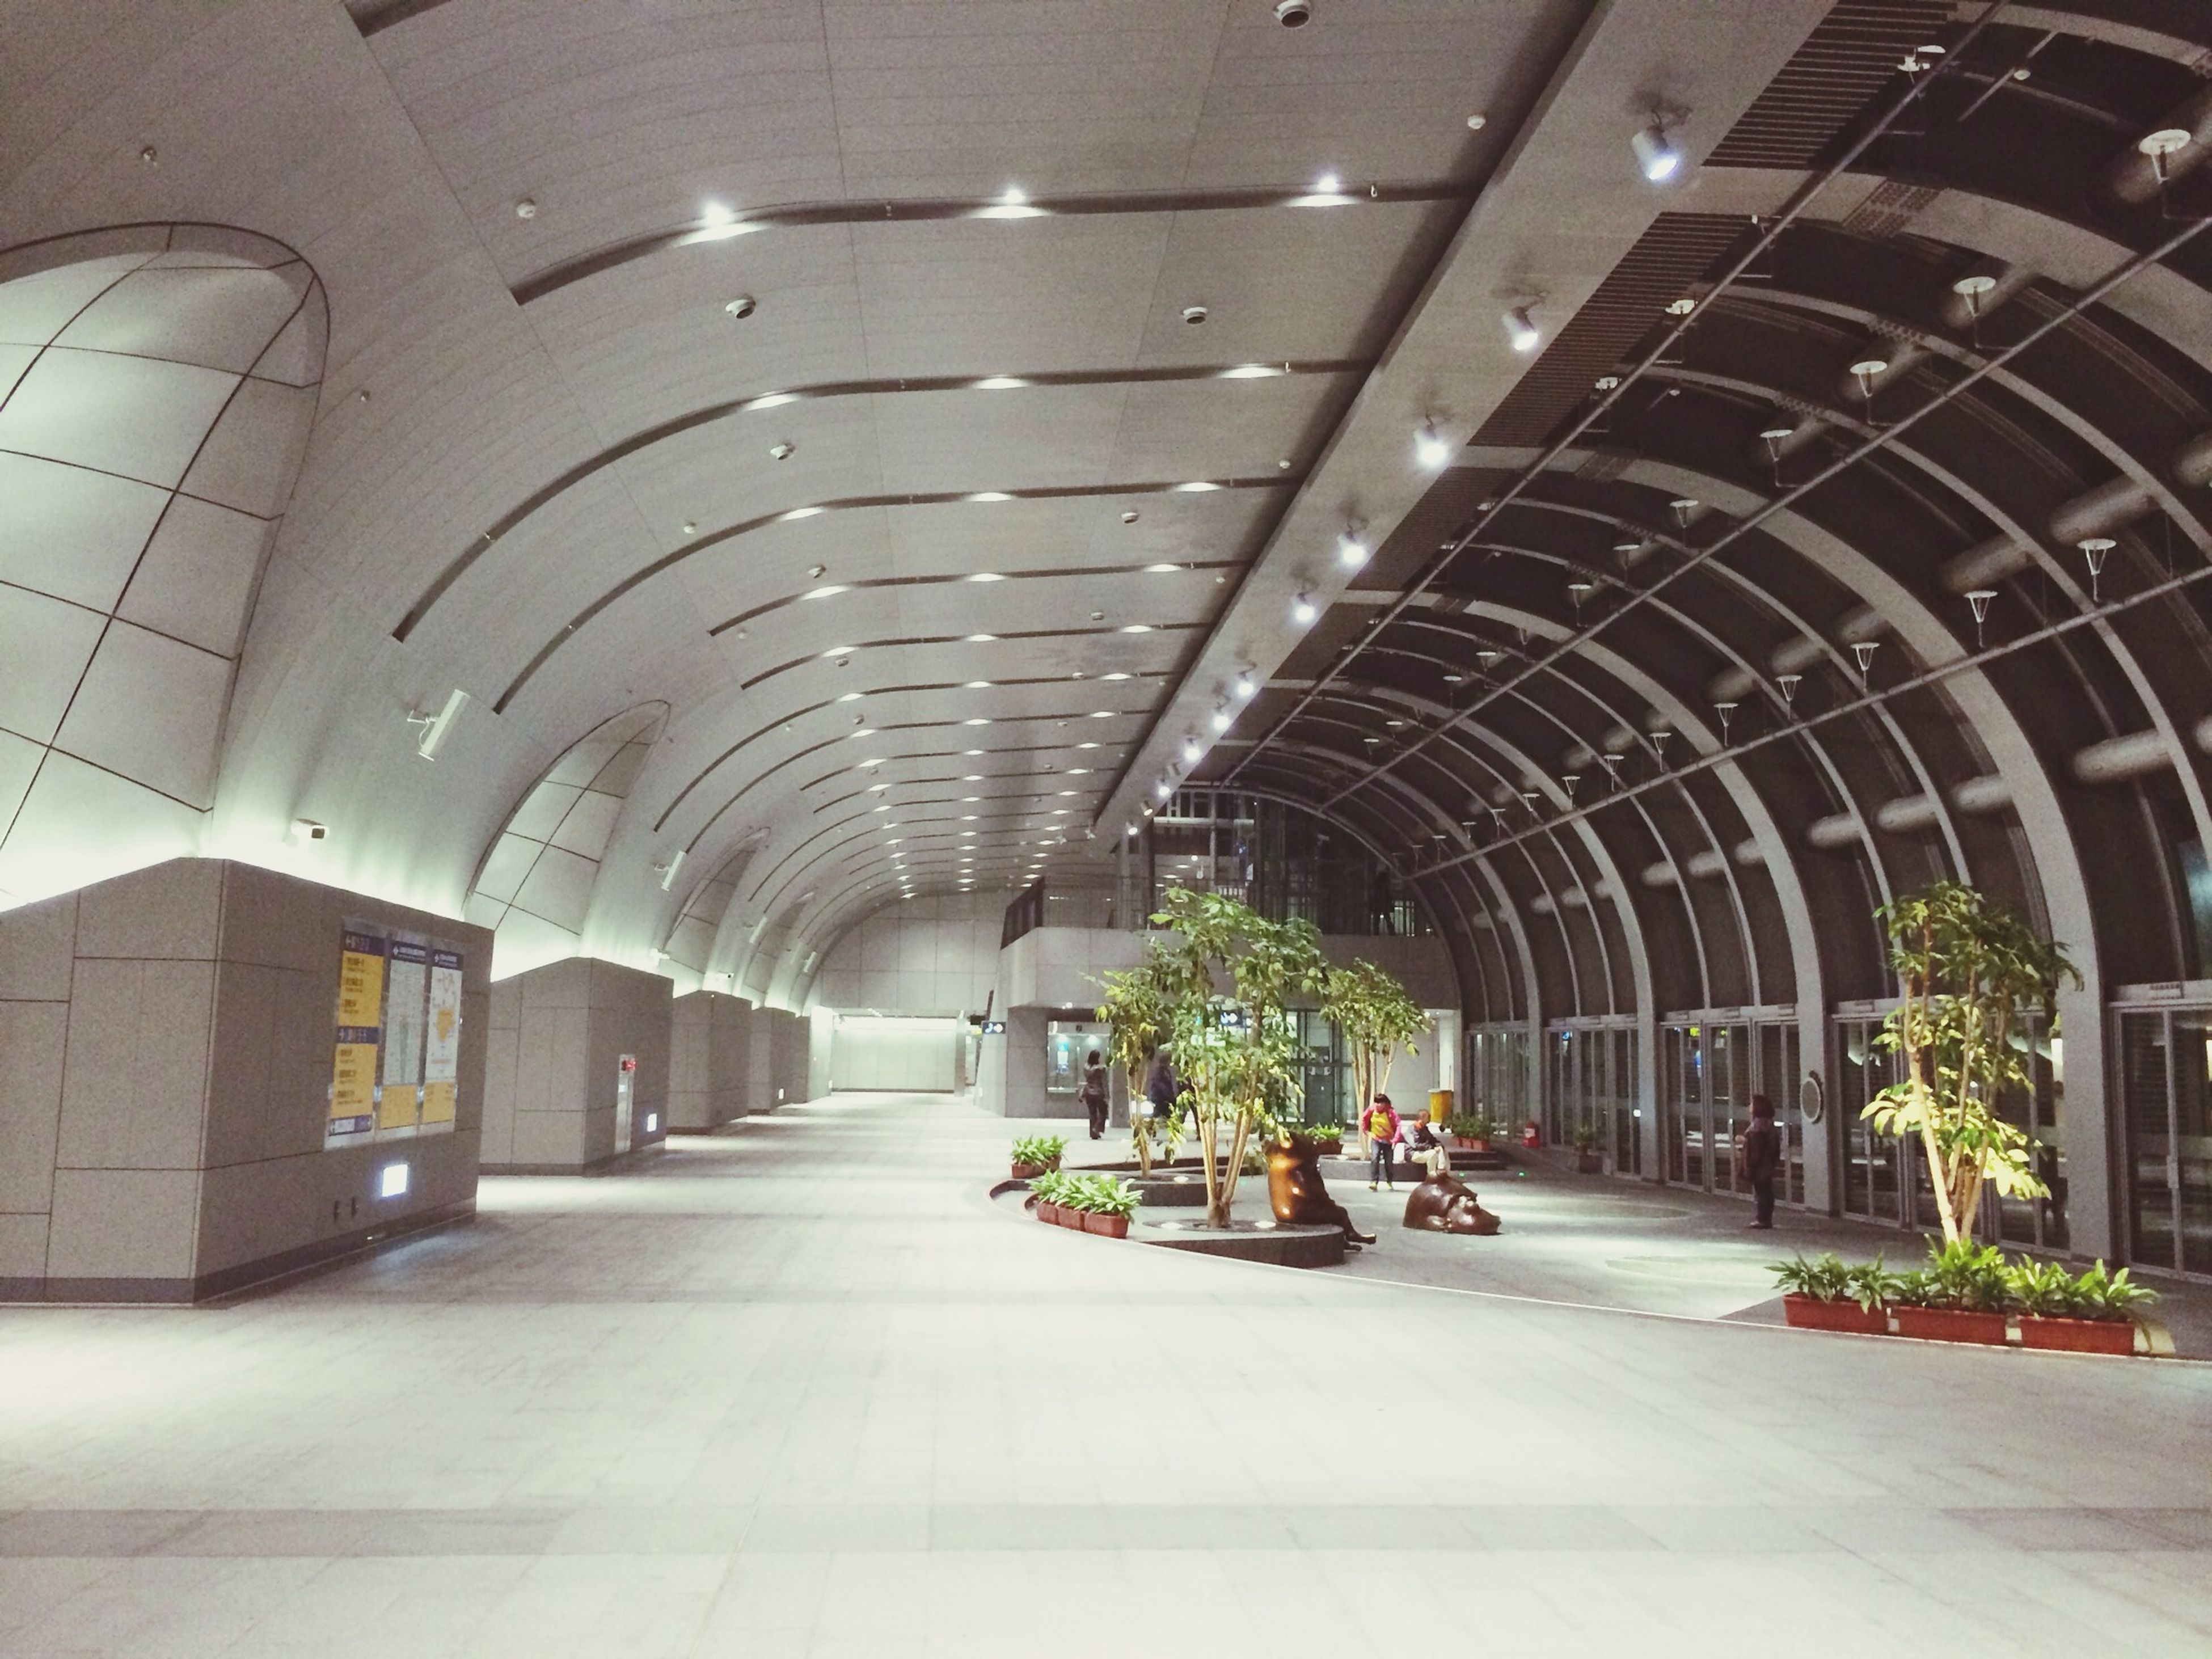 architecture, built structure, indoors, the way forward, arch, ceiling, diminishing perspective, incidental people, corridor, transportation, vanishing point, archway, architectural column, building, empty, building exterior, walkway, day, tunnel, tiled floor